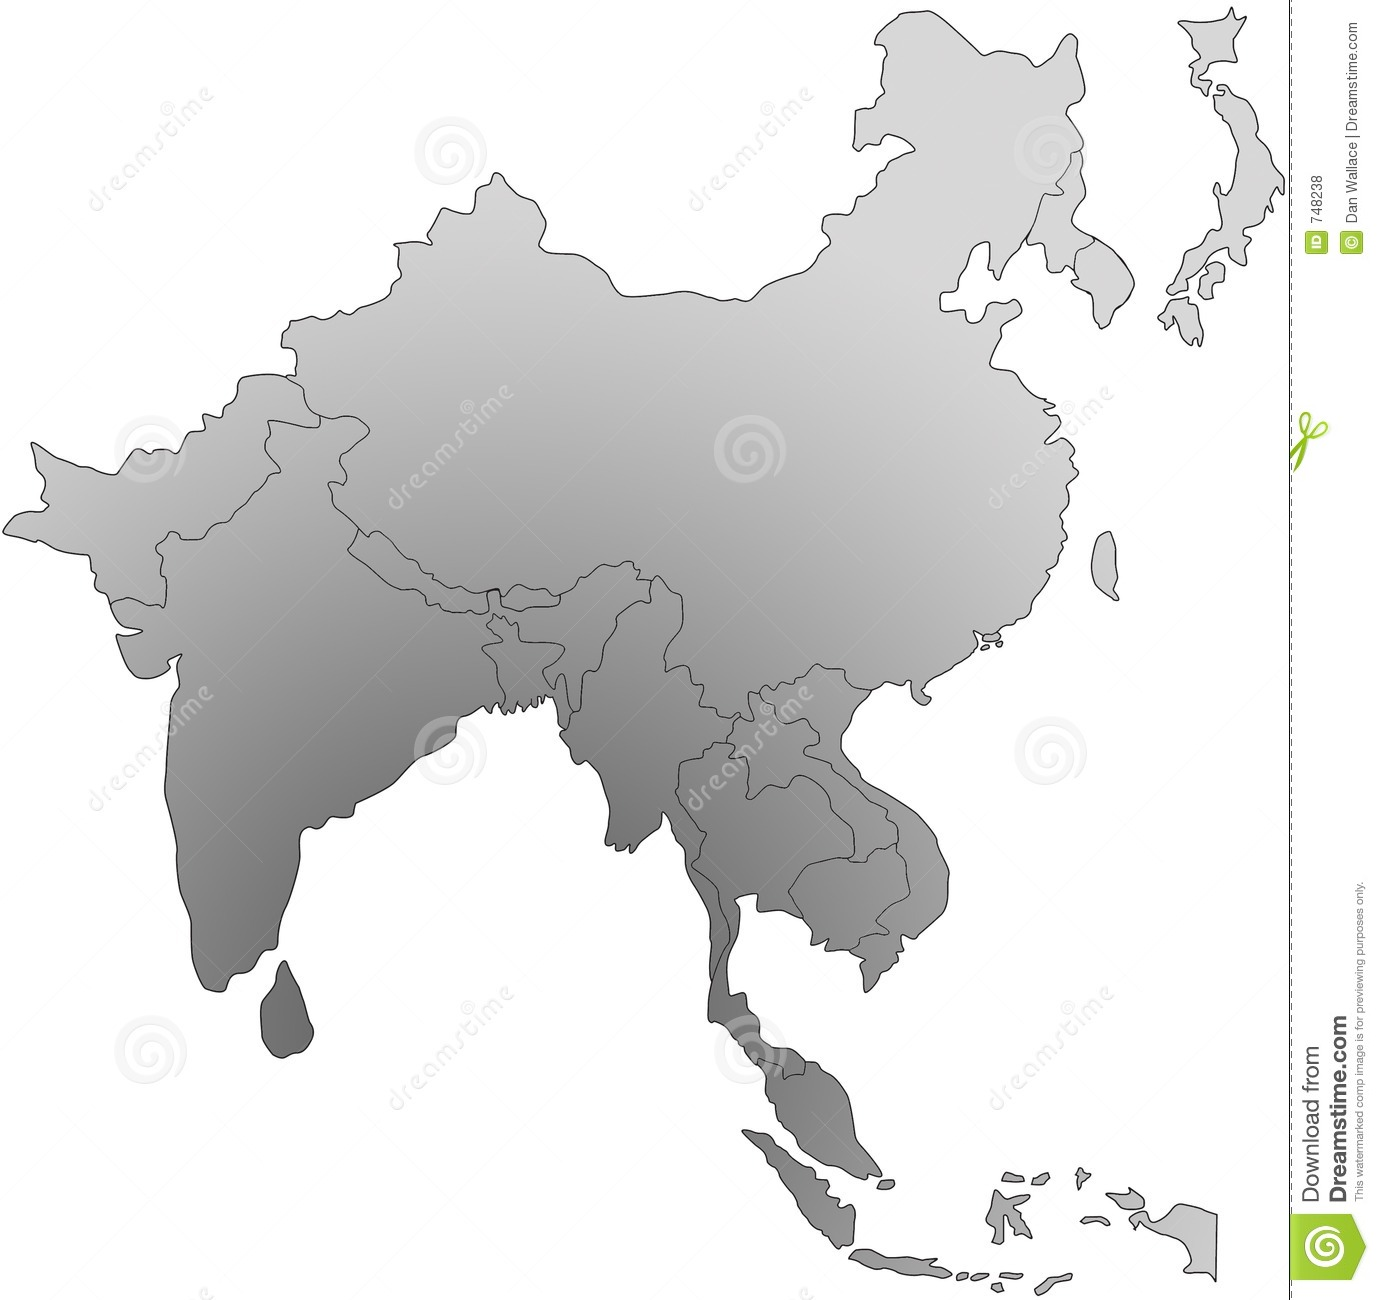 South East Asia Map Royalty Free Stock Photos.